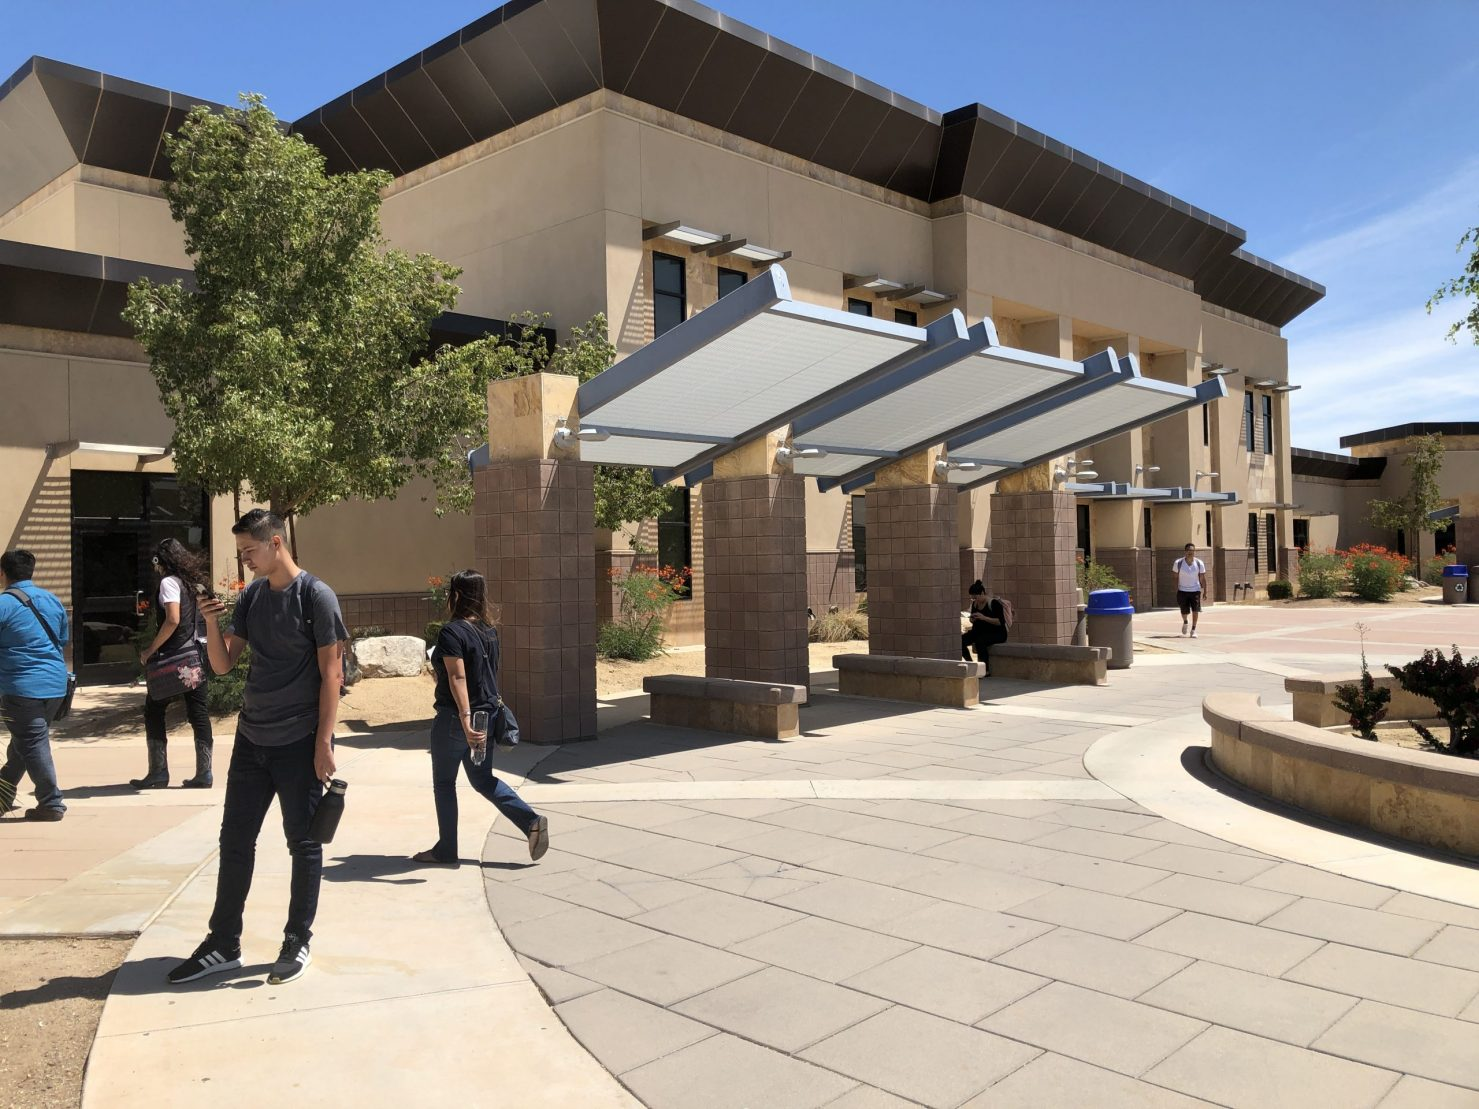 BREAKING NEWS: IVC Joins SDSU-IV in Not Re-opening In Fall